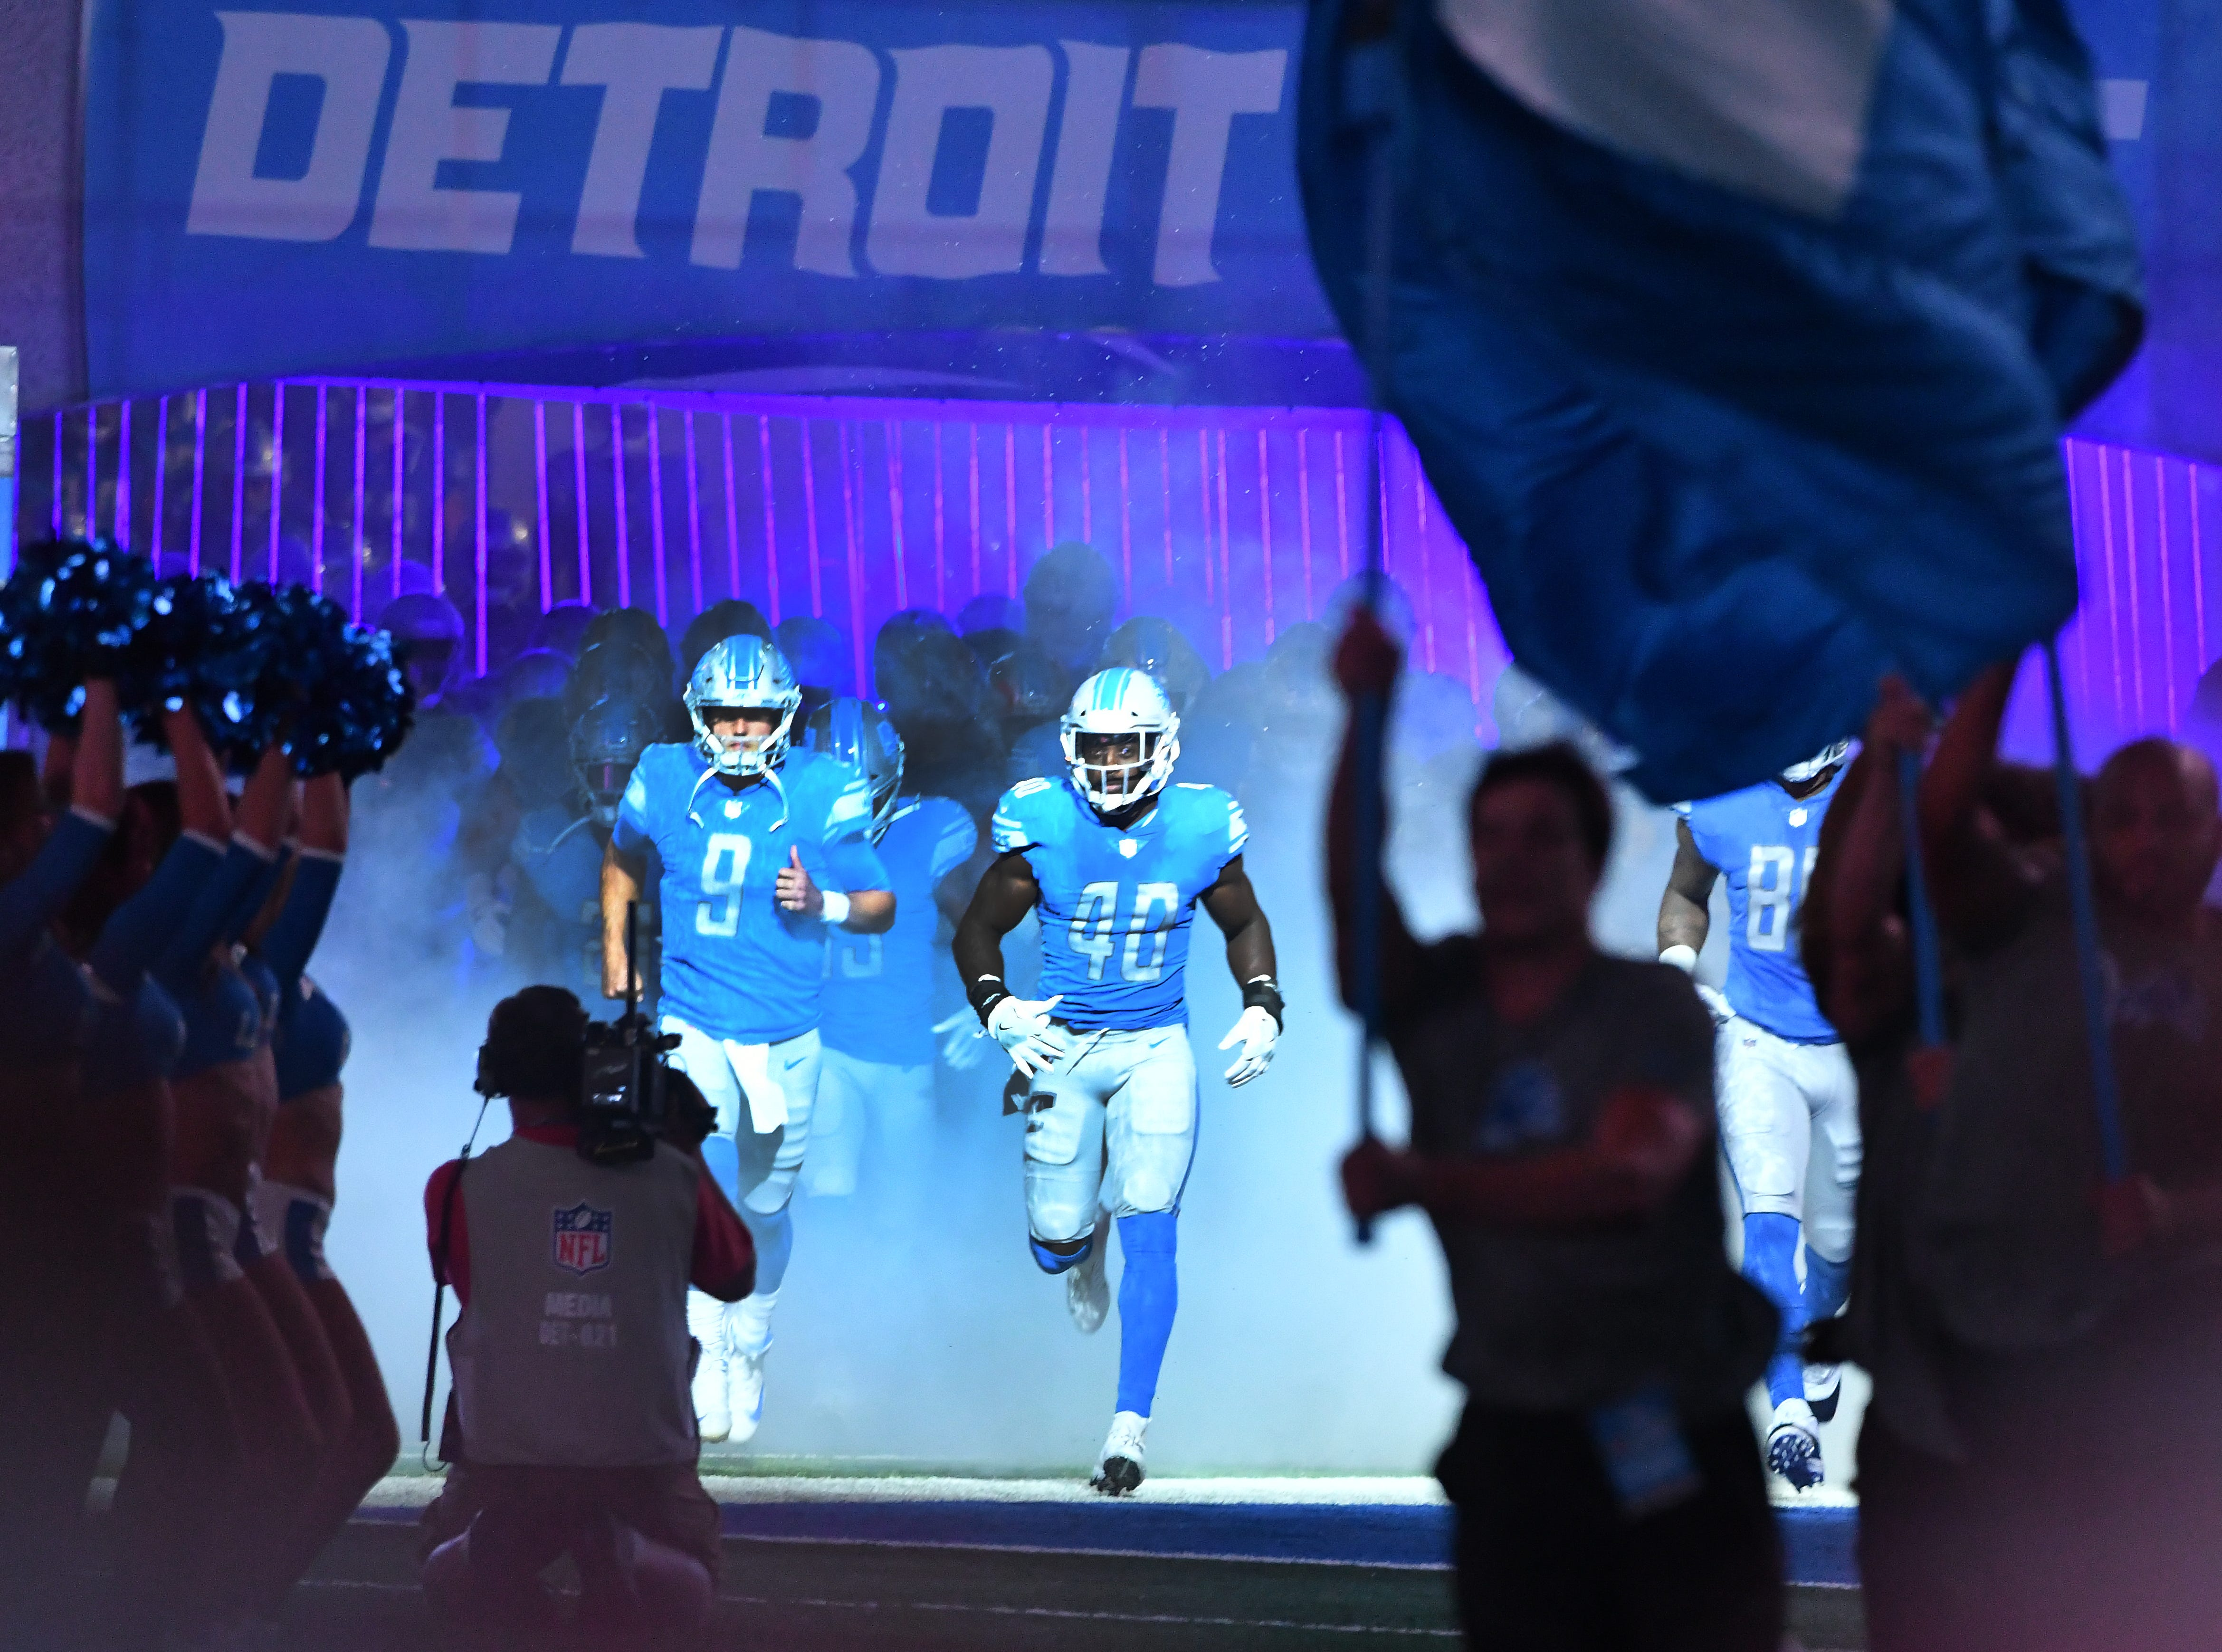 Quarterback Matthew Stafford and Jarrad Davis lead the Lions out of the tunnel for Detroit's first home preseason game against the New York Giants at Ford Field on August 17, 2018.